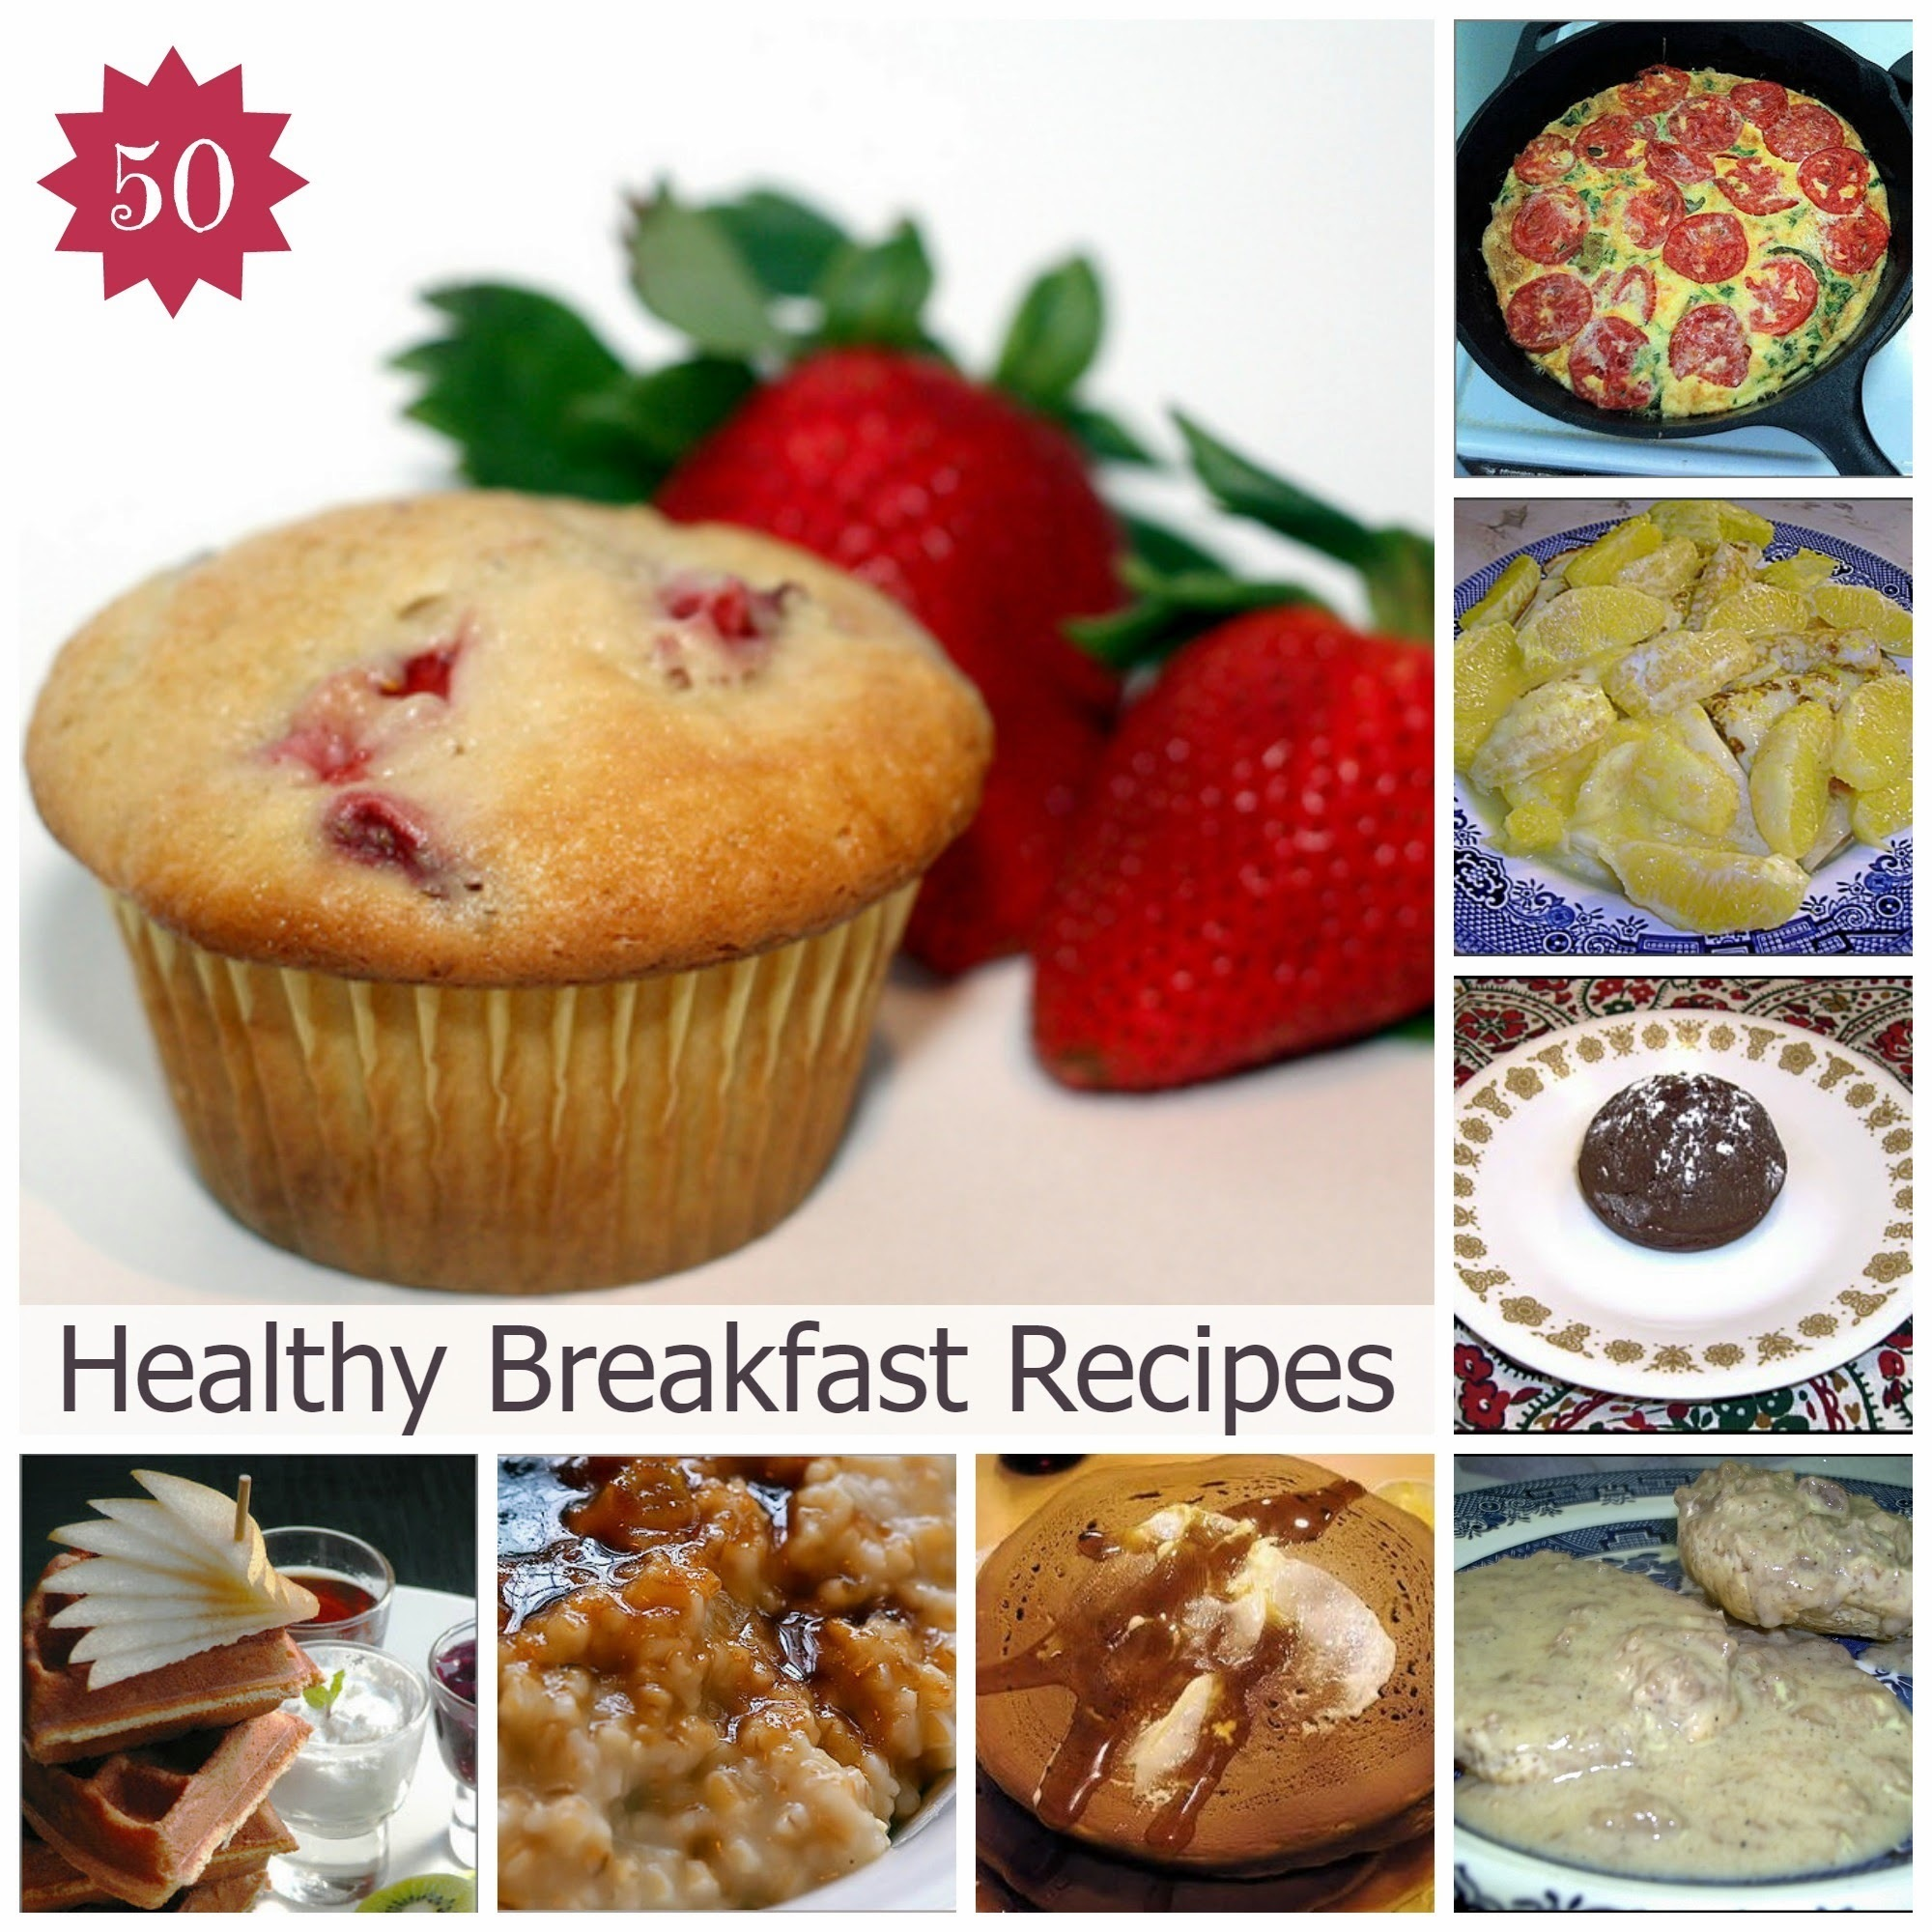 50 Healthy Breakfast Recipes To Lose Weight